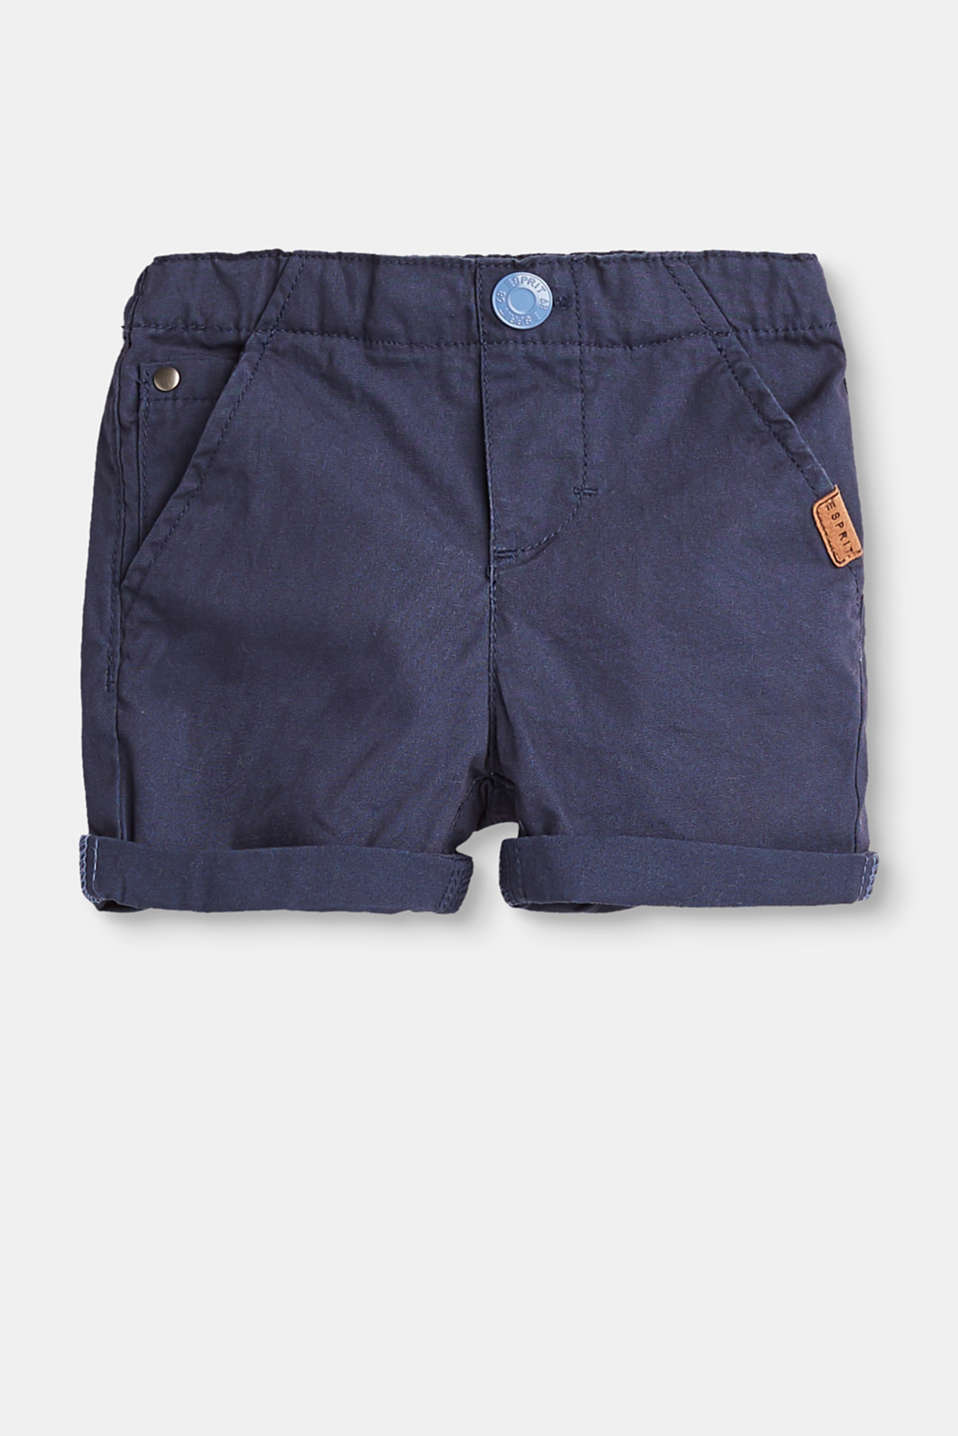 Esprit - Basic shorts in 100% cotton